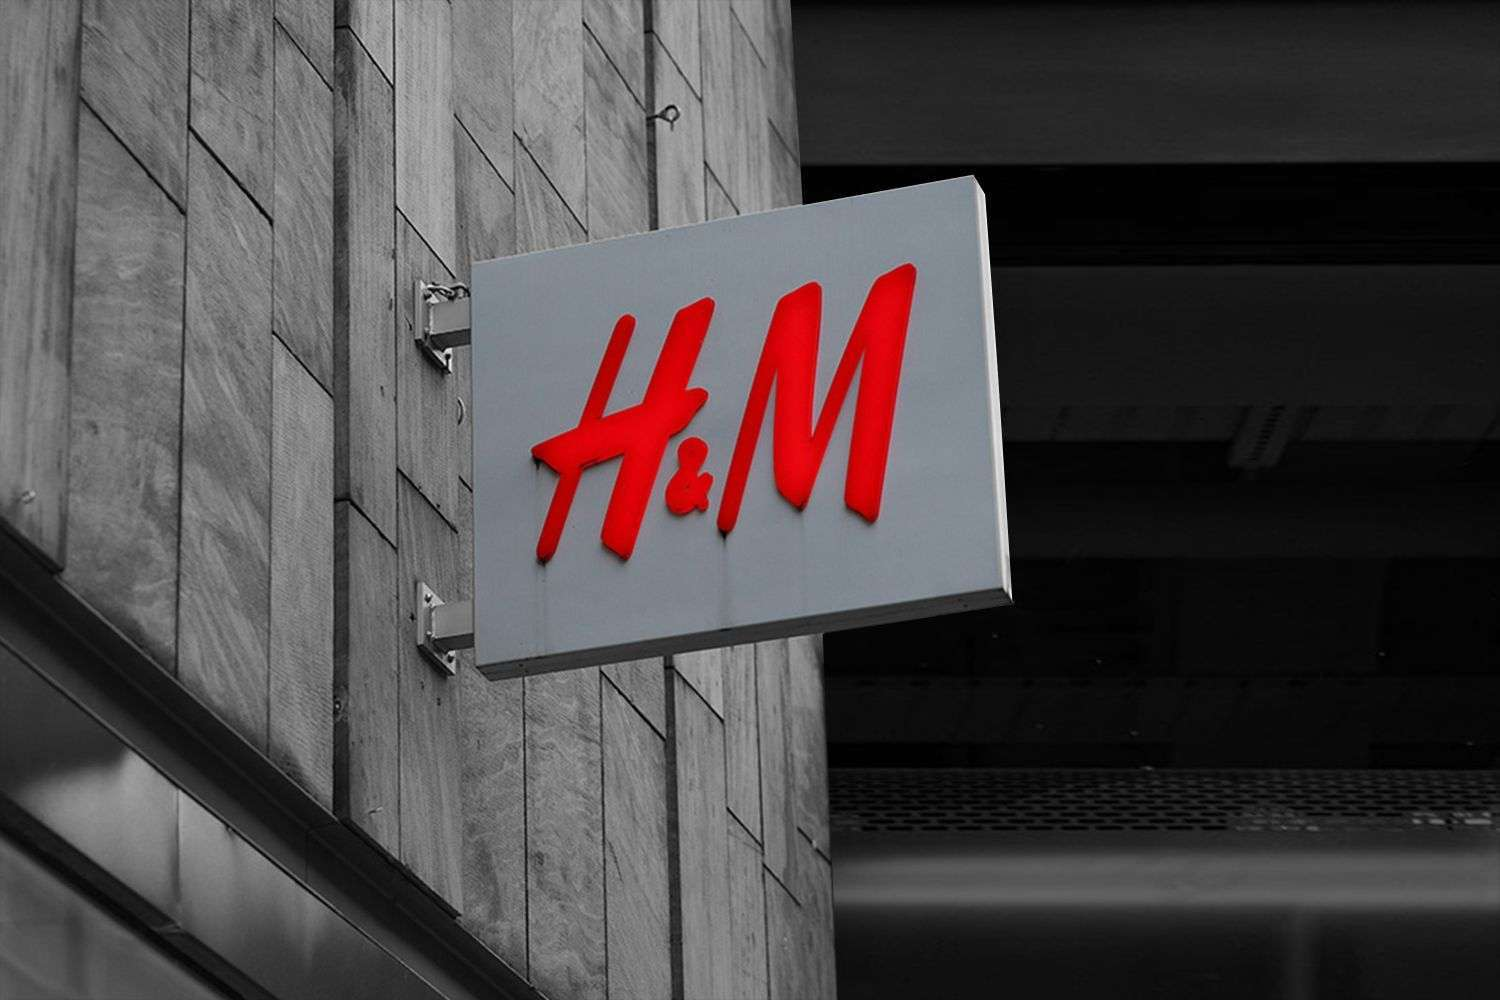 h&m factory workers violence